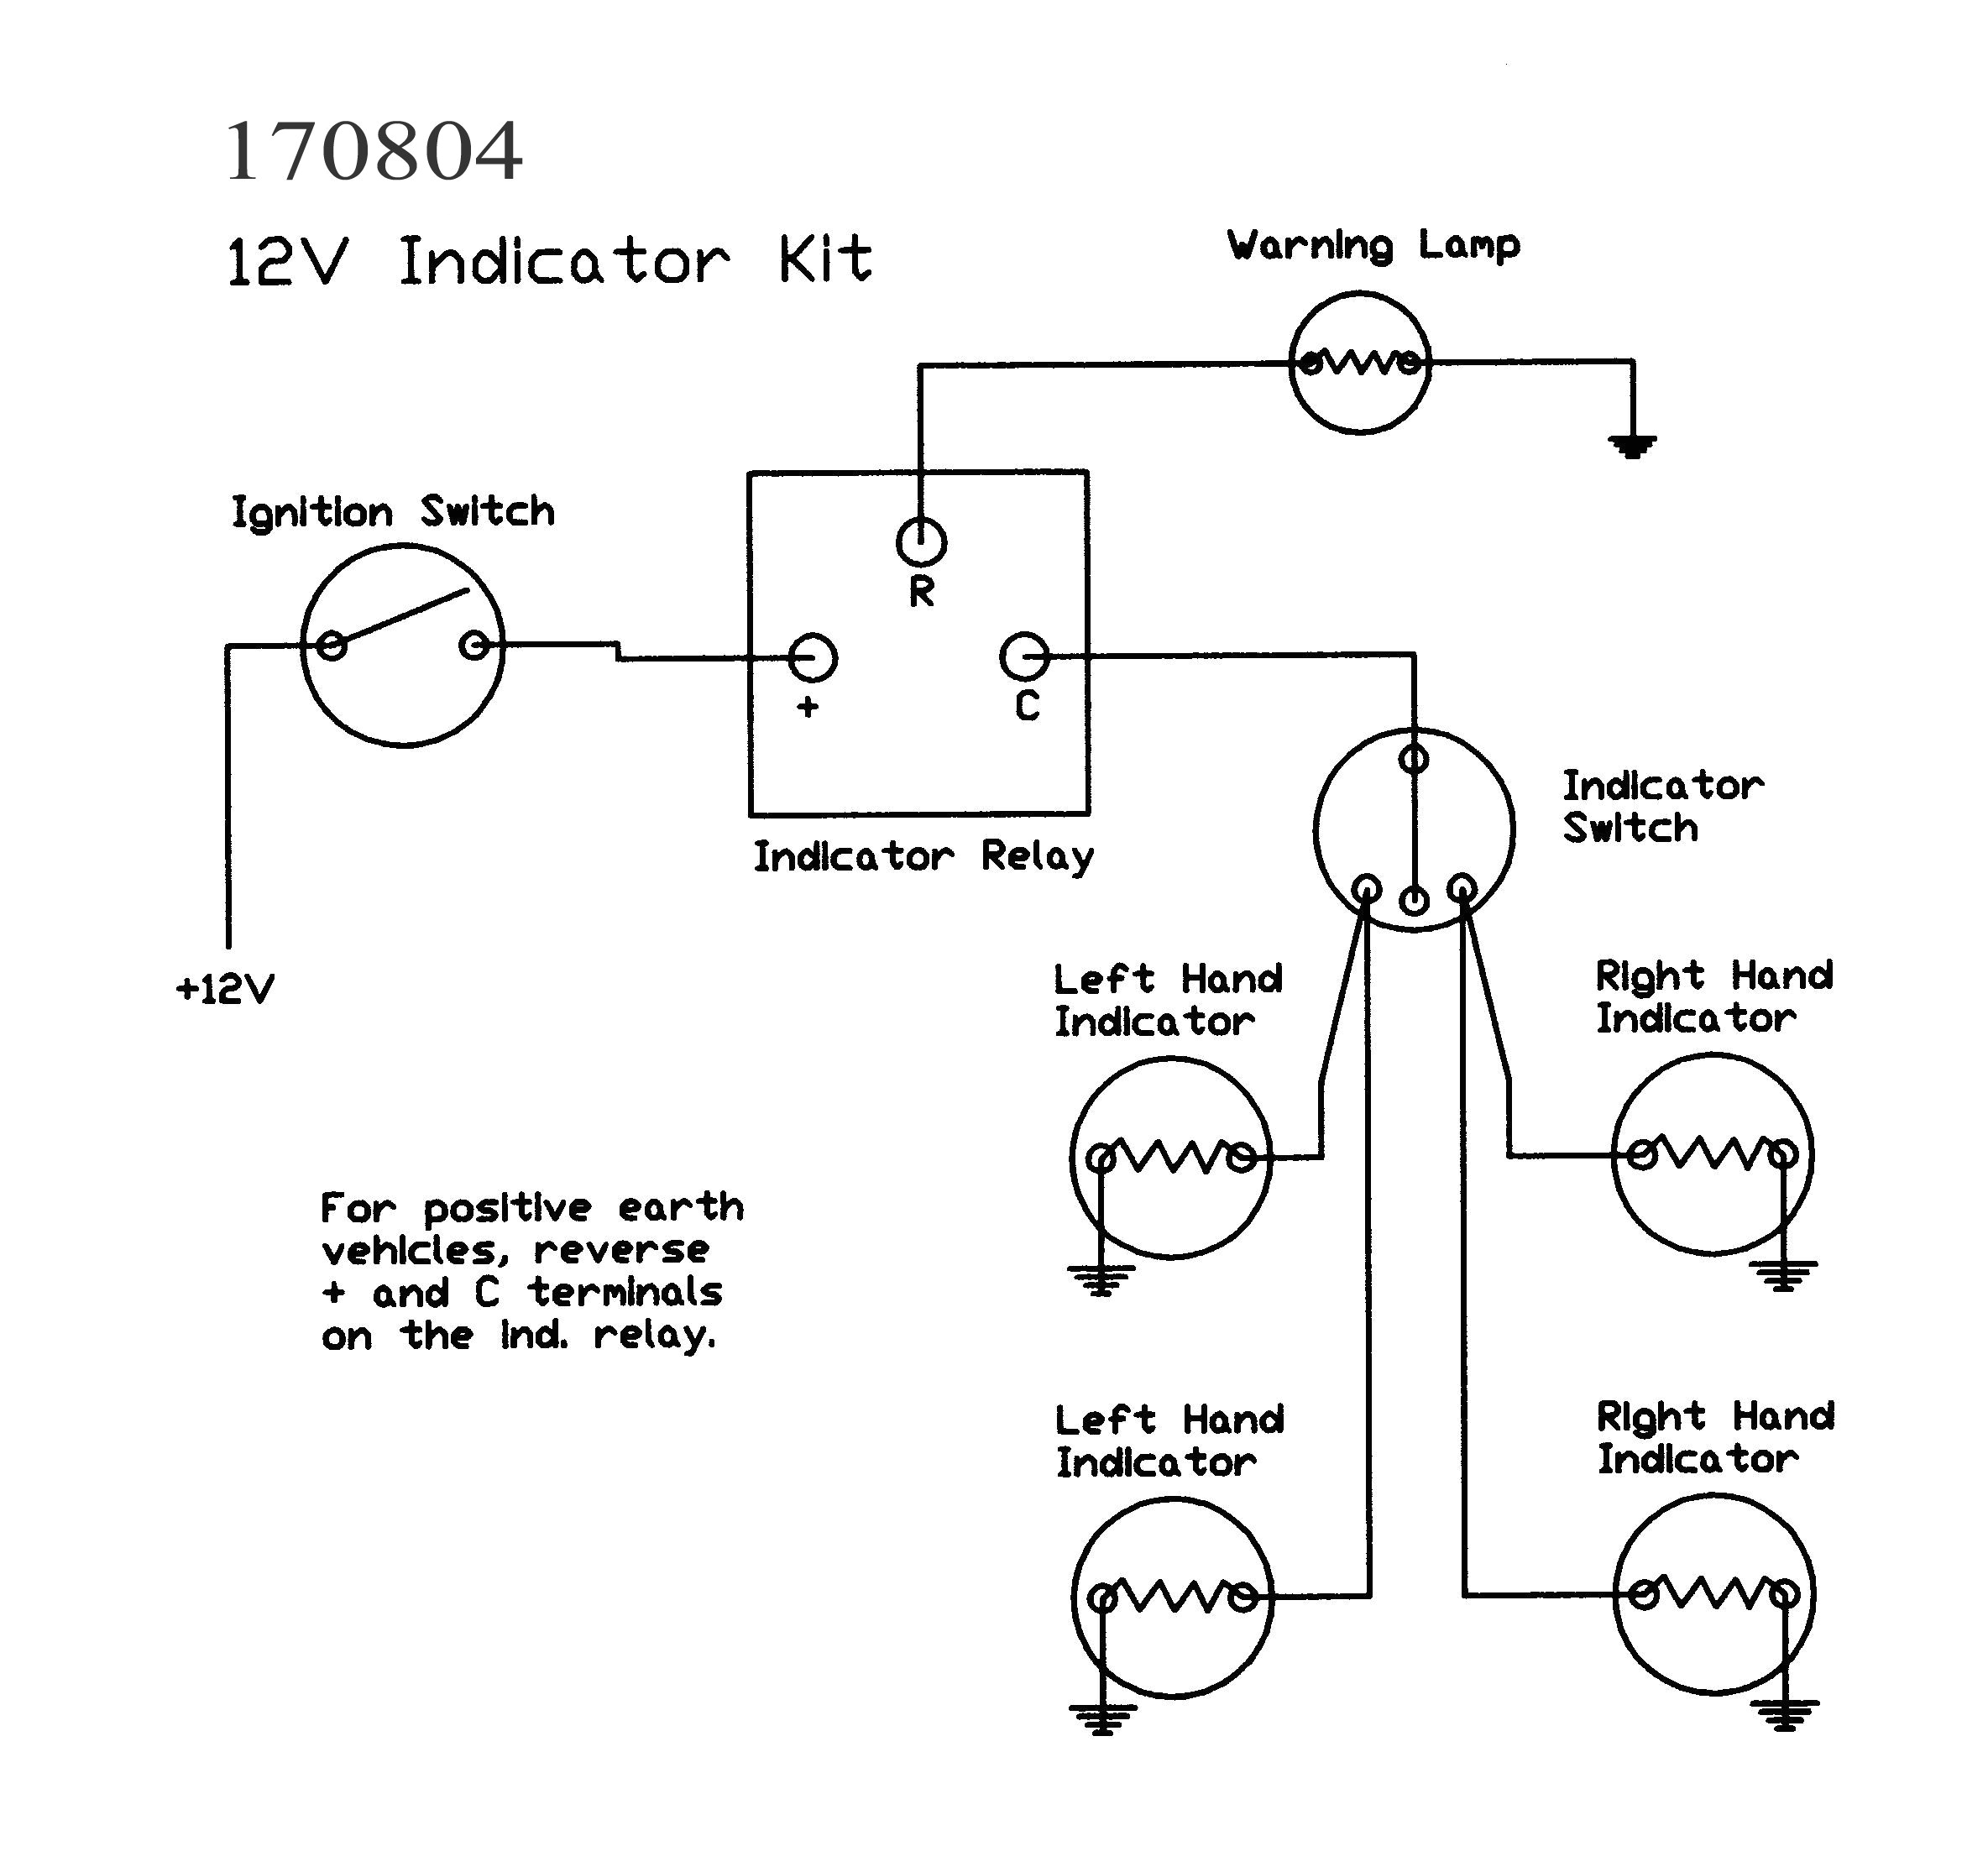 ignition relay wiring diagram jcb ignition switch wiring diagram inspirationa turn signal wiring diagram lovely